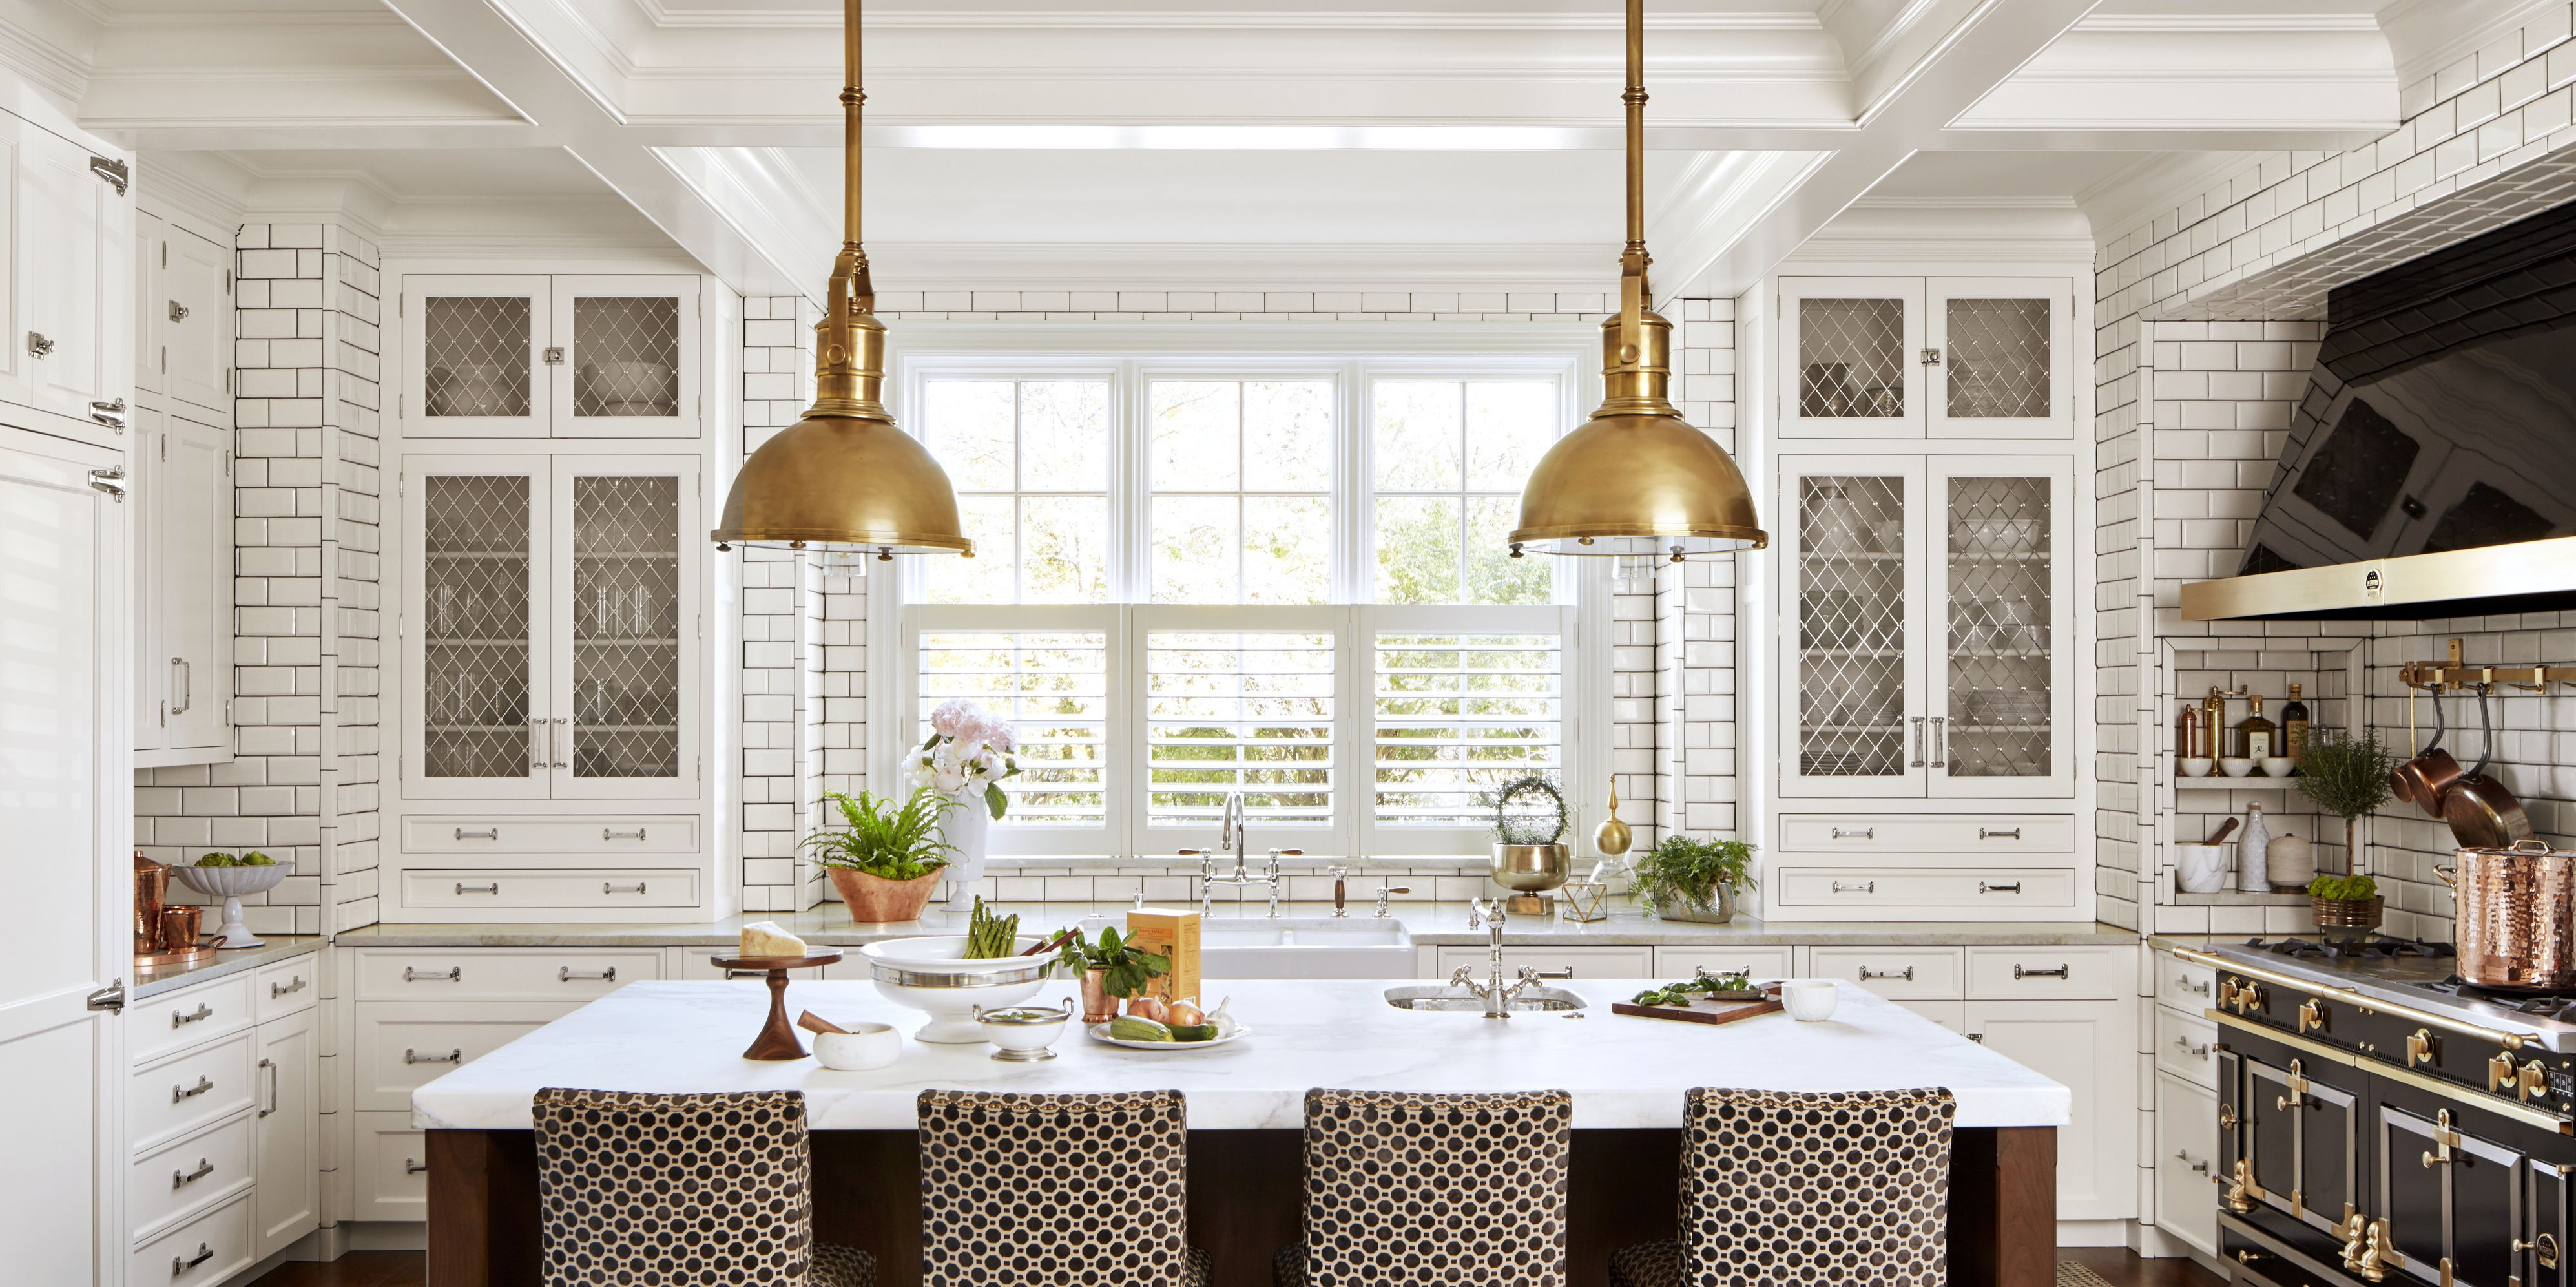 45 Kitchen Cabinet Ideas We're Obsessed With